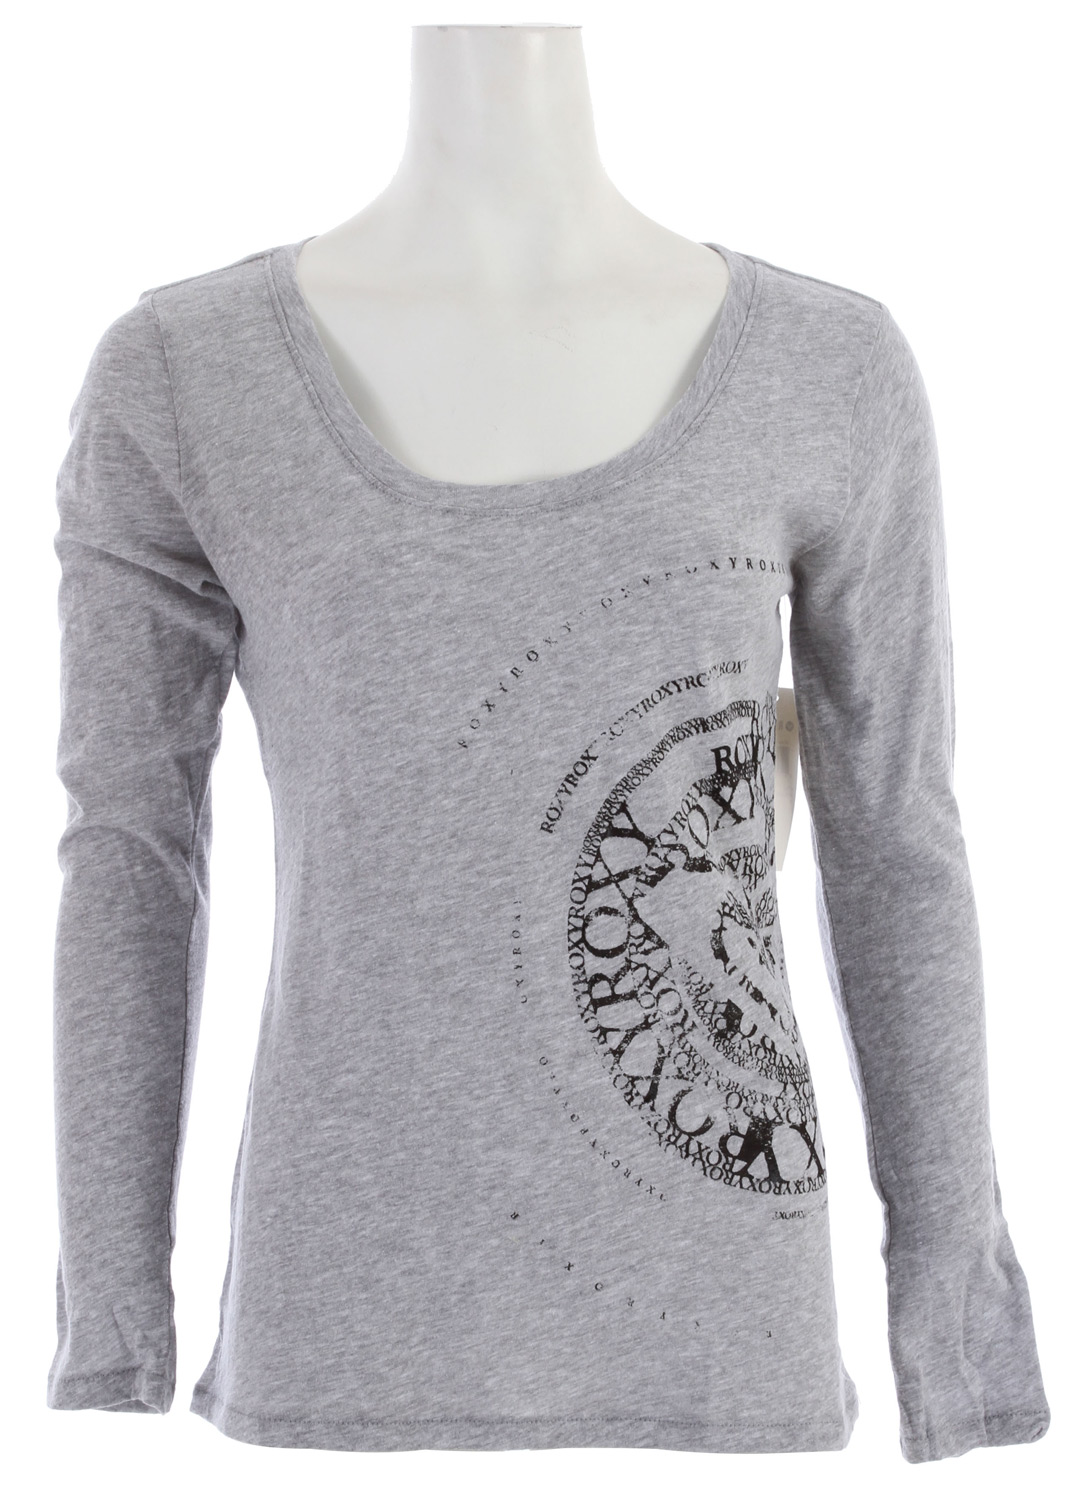 "Surf Key Features of the Roxy Round And Round T-Shirt: 100% Cotton slub Skinny racerback tee 28""hps - $29.50"